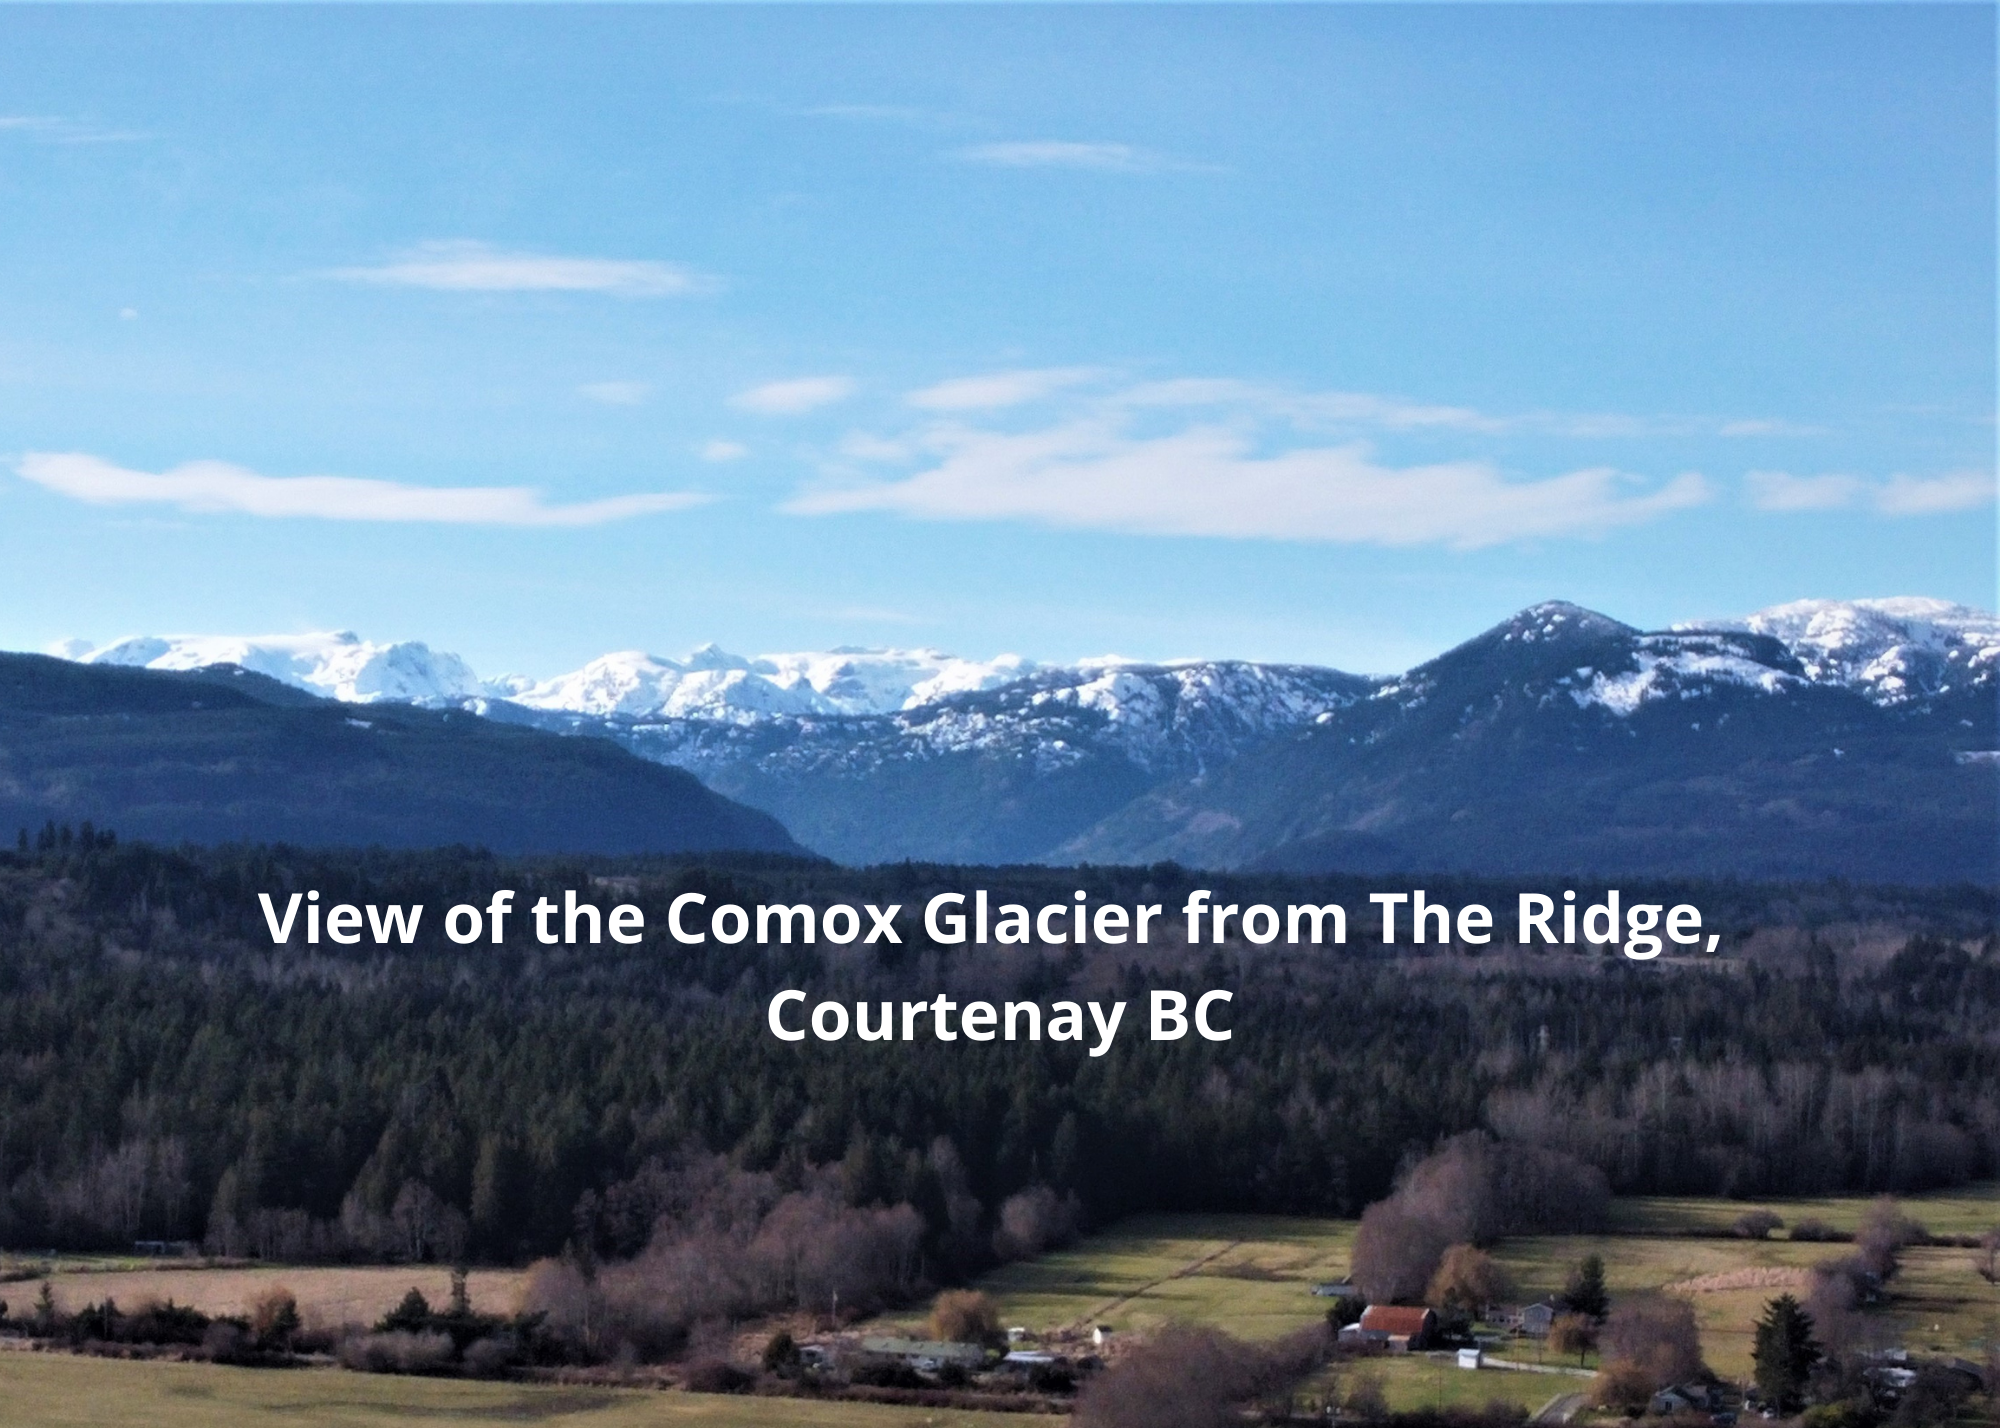 Design/Build New Home at The Ridge in Courtenay, BC